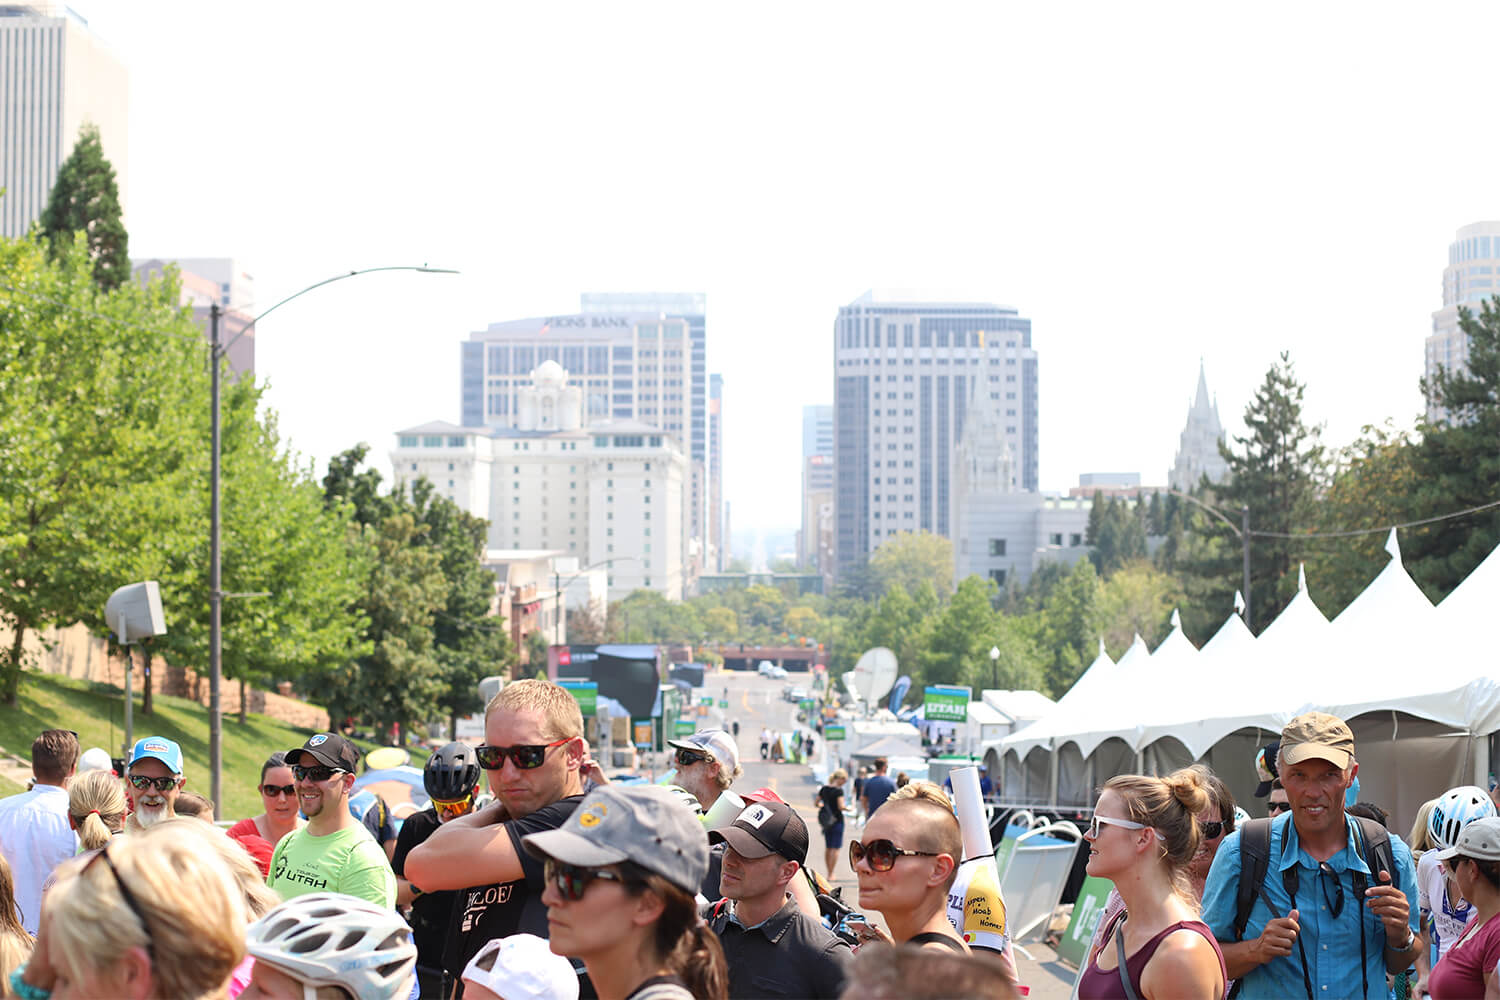 Contender Salt Lake City Stage Tour of Utah 2018 post-race crowd gathered